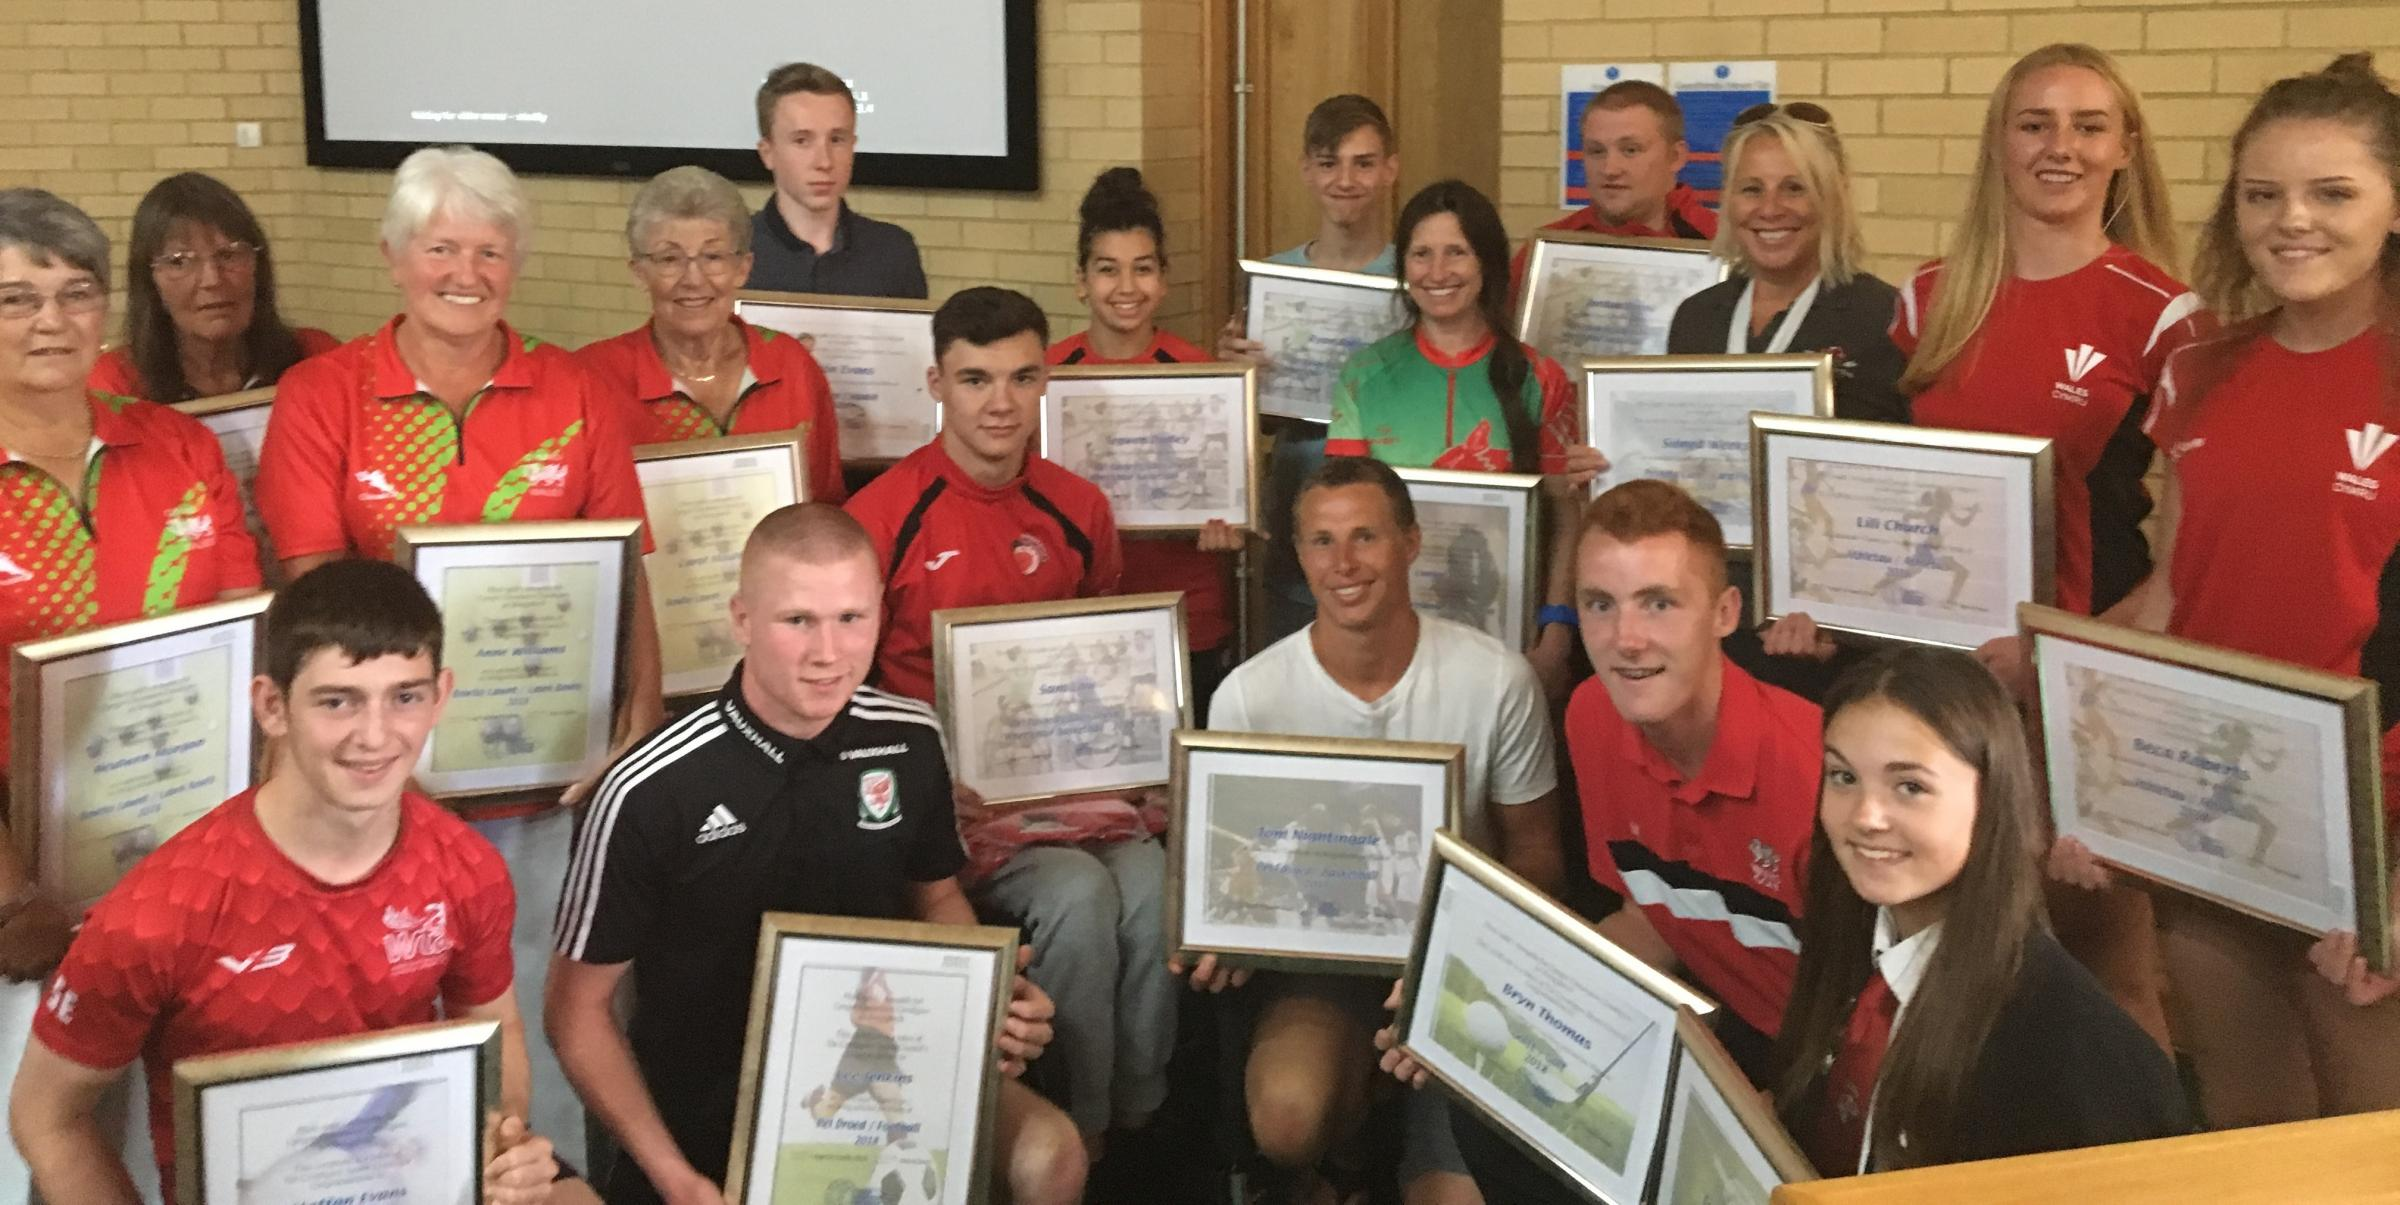 Ceredigion sports people who were awarded a commemorative certificate from the Ceredigion Sports Council in recognition for becoming internationals and representing Wales for the first time in the past year